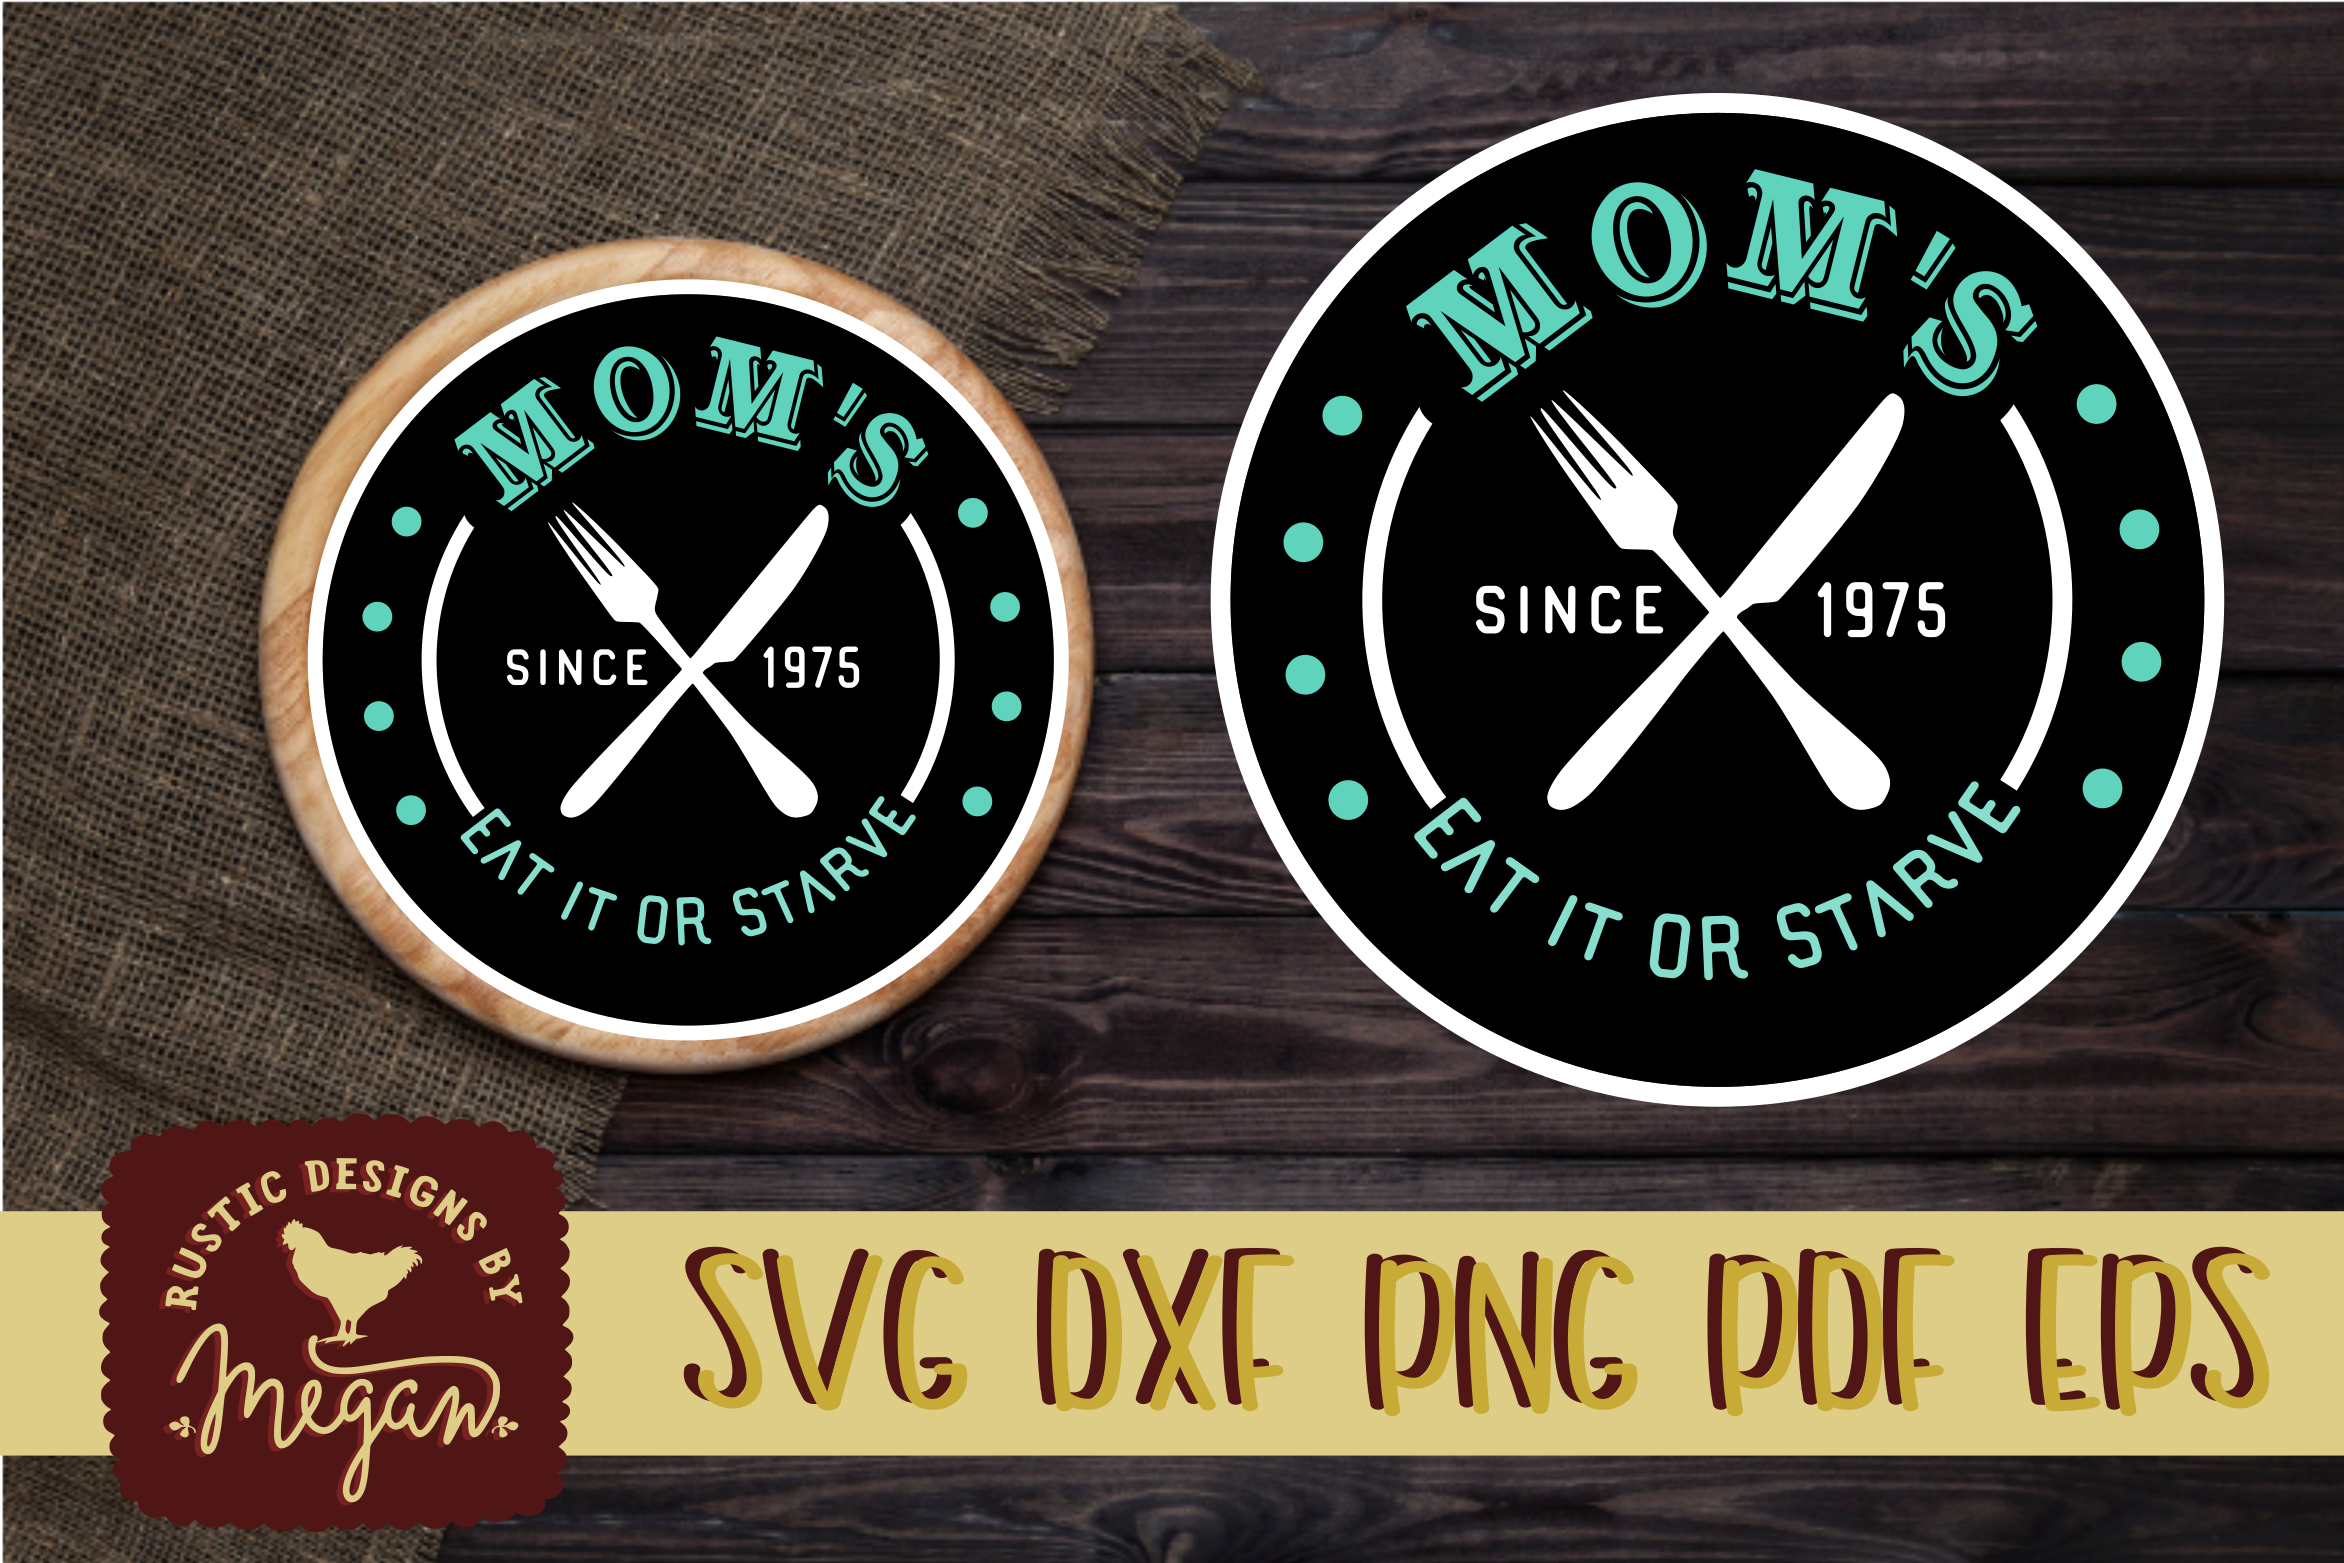 Mom's Eat or Starve funny Farmhouse SVG example image 1